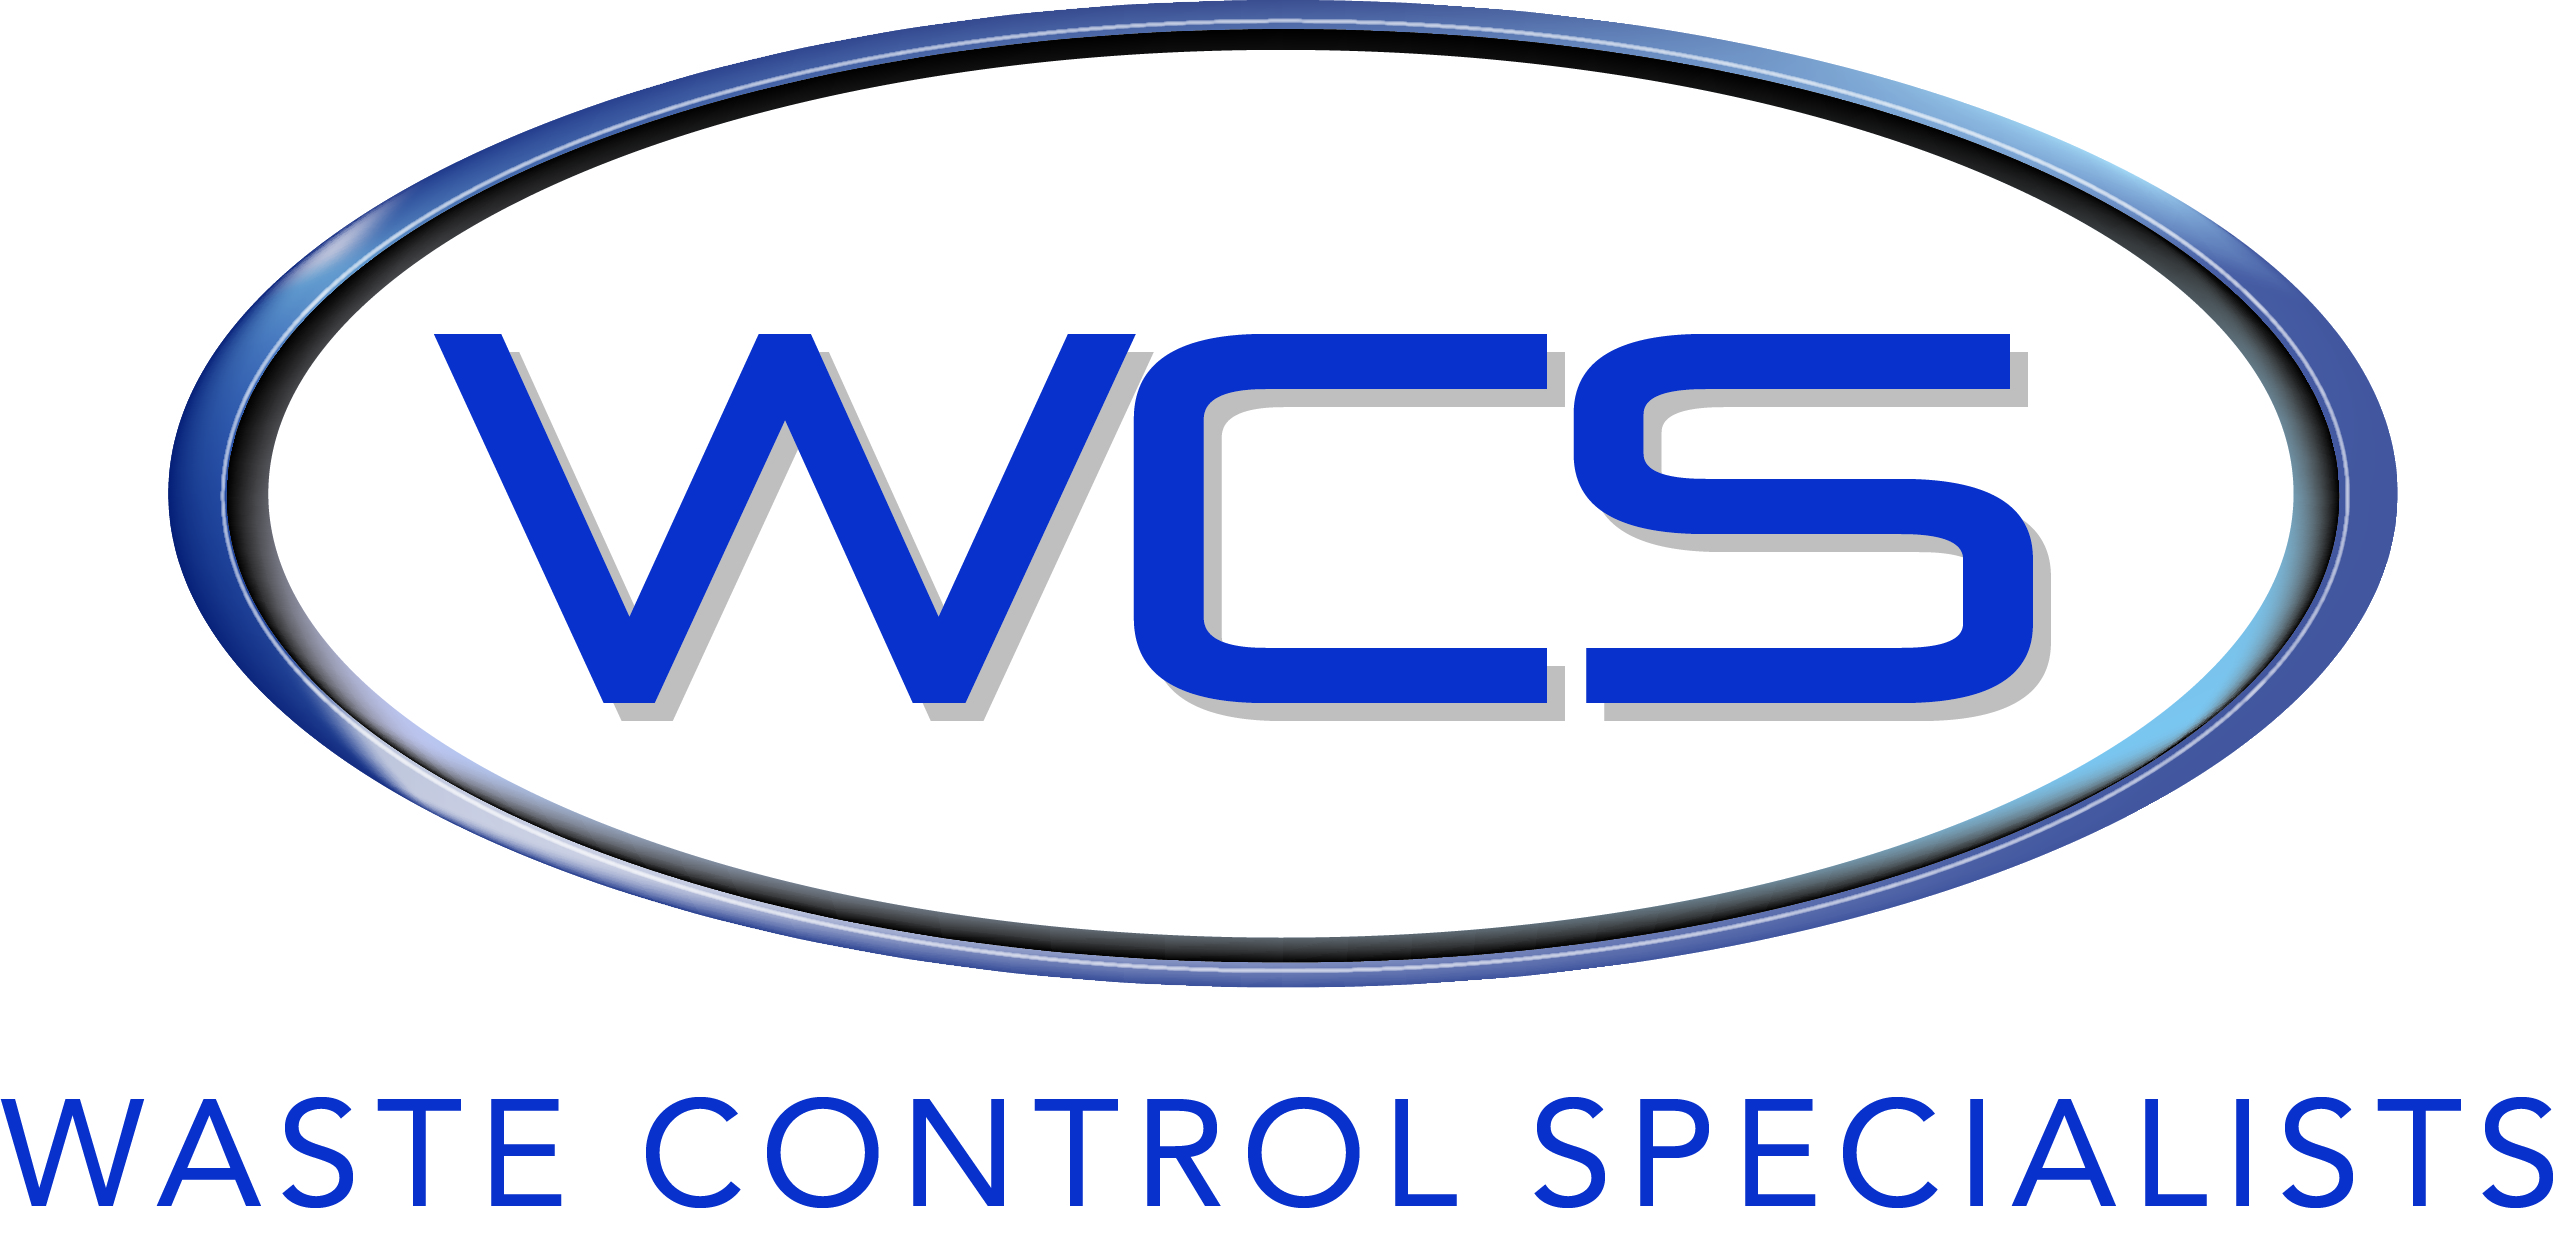 Waste Control Specialists